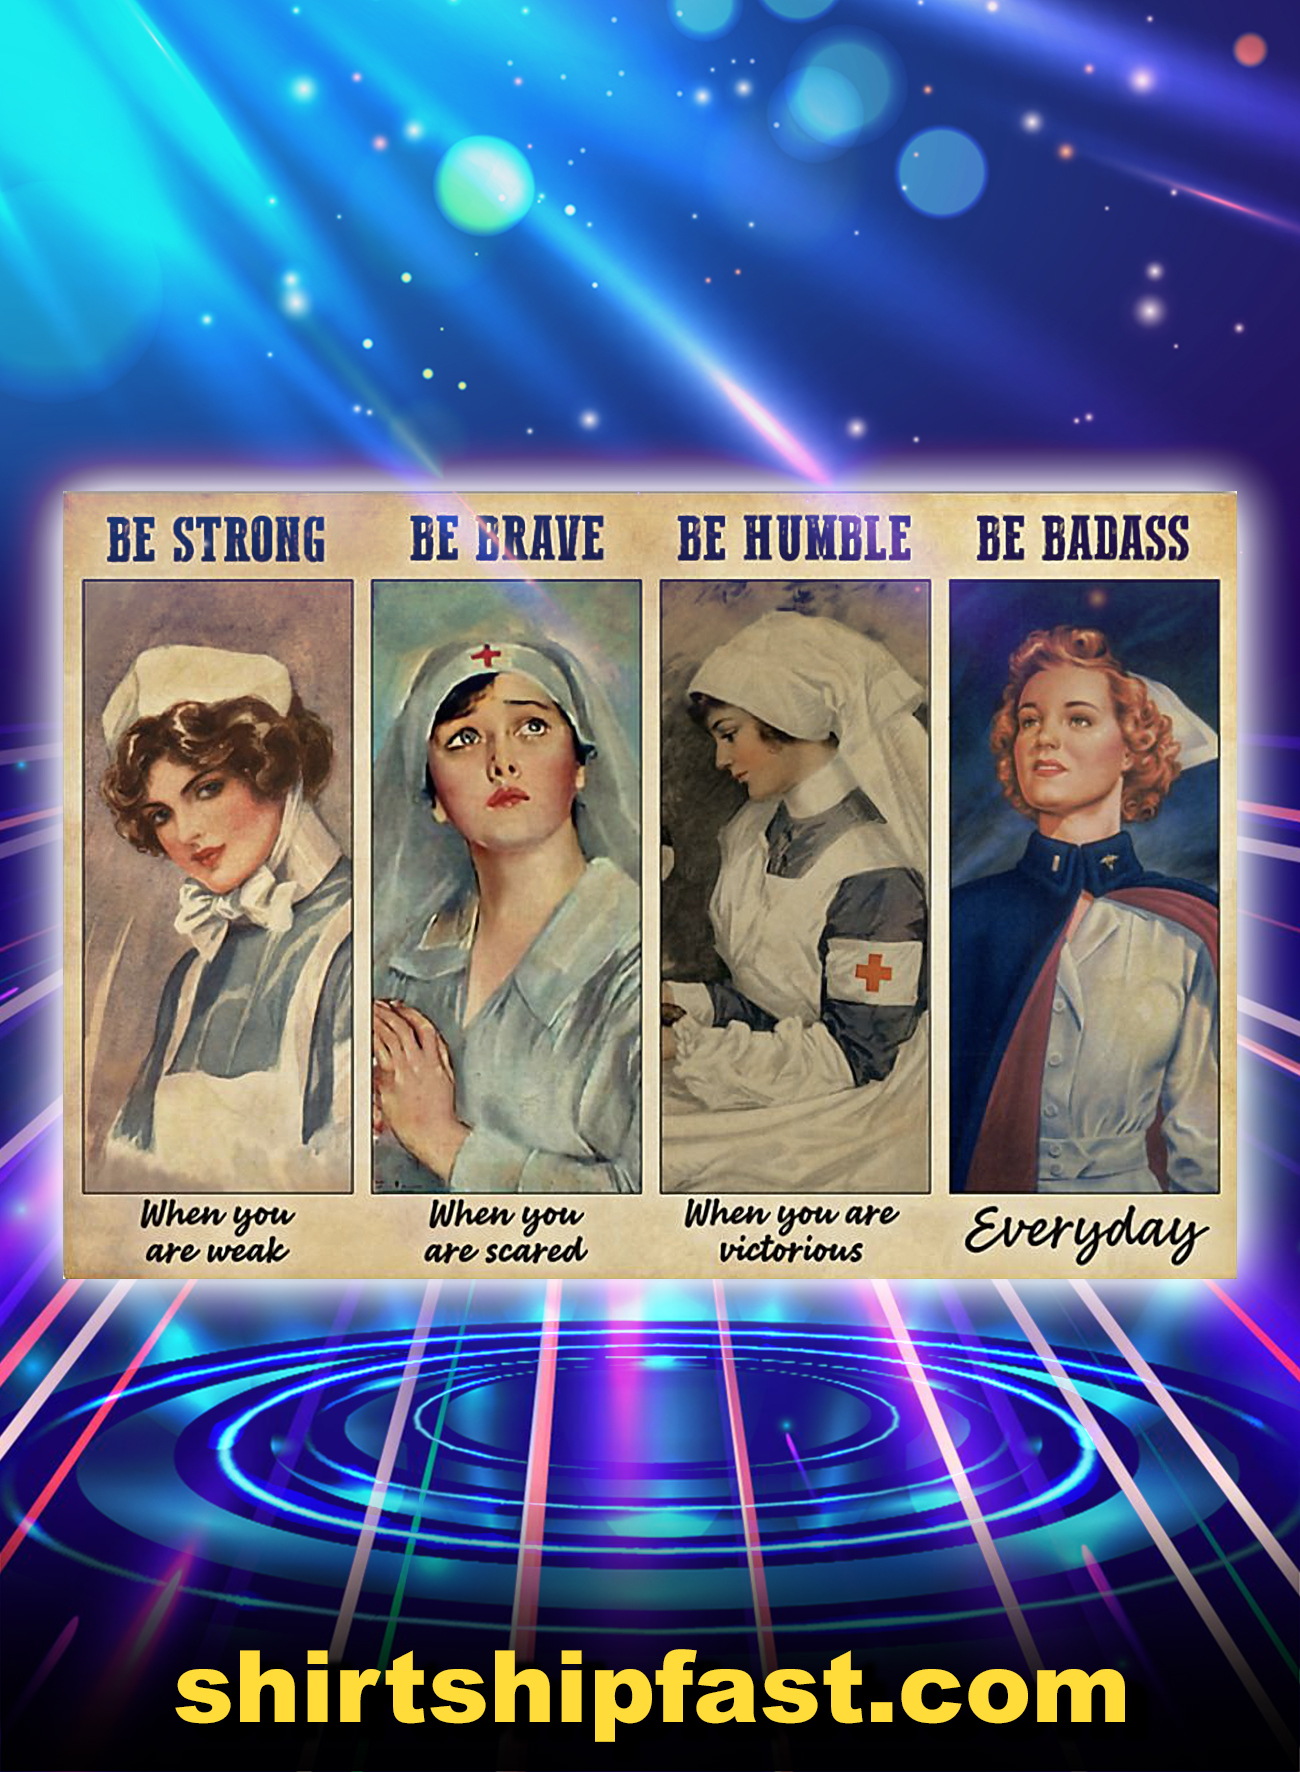 Nurse Women Be strong be brave be humble be badass poster - A4